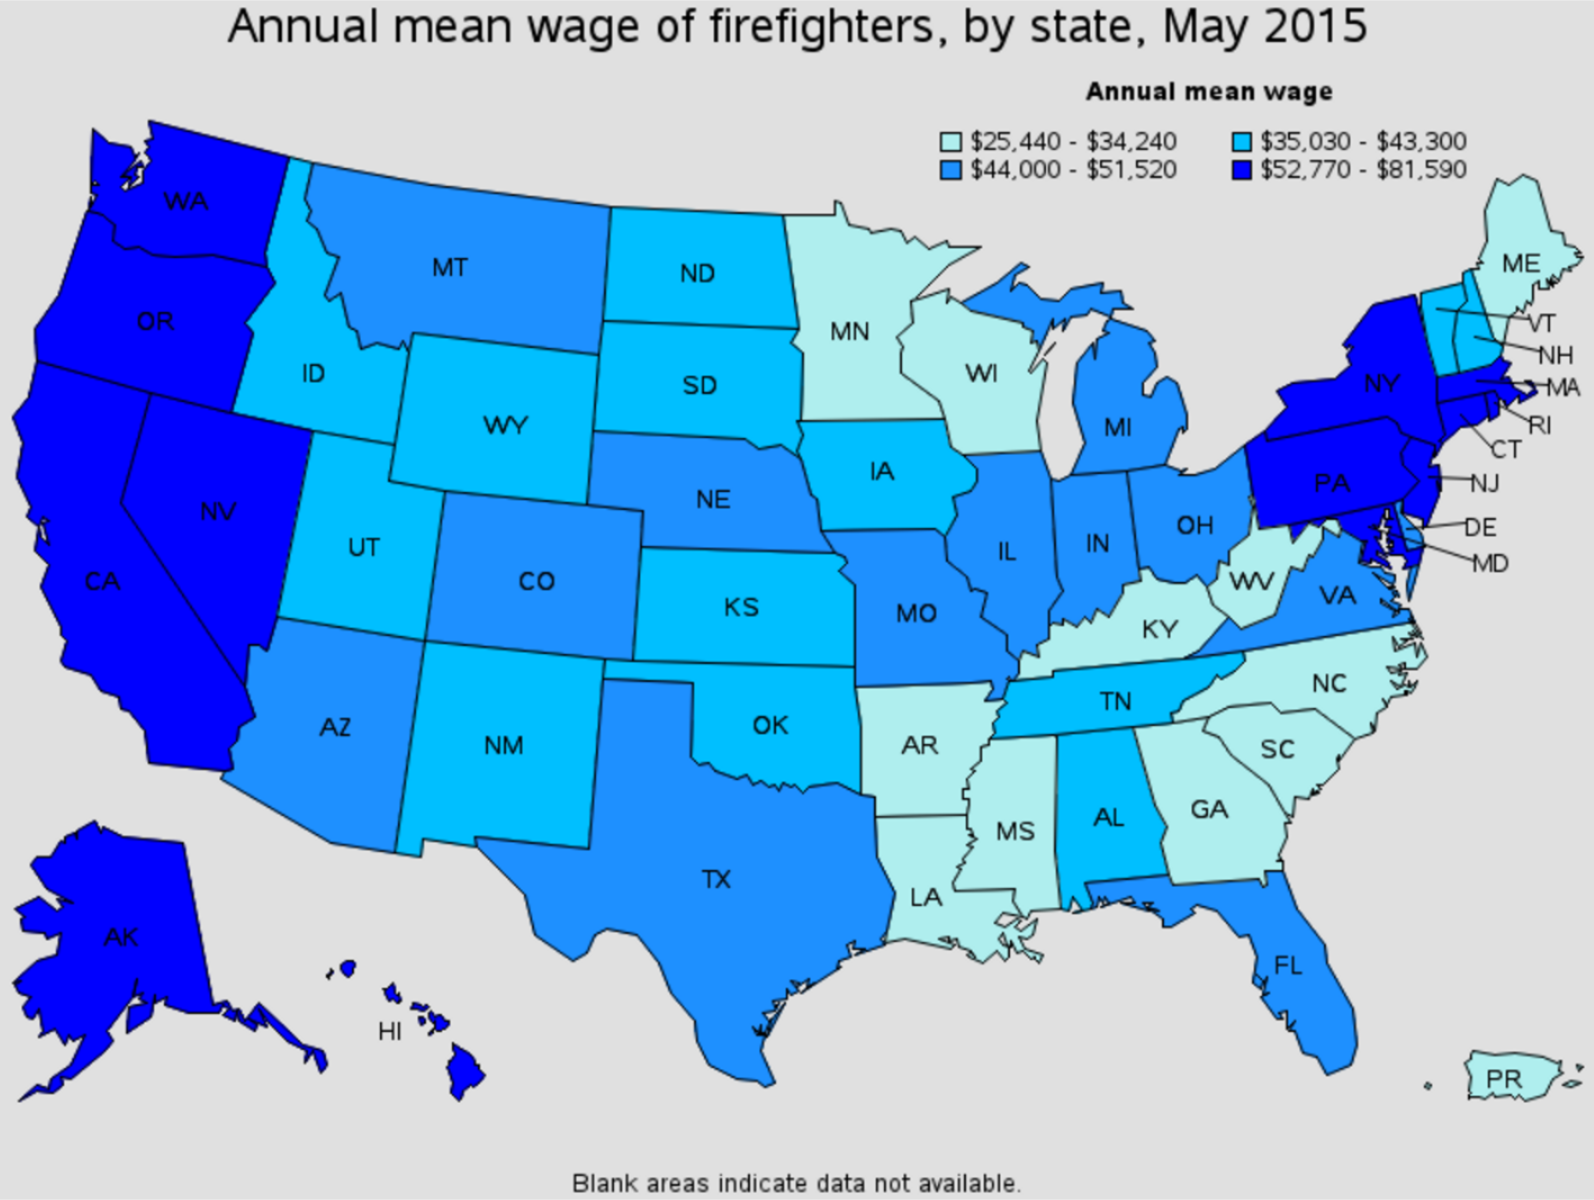 firefighter average salary by state Wynona Oklahoma